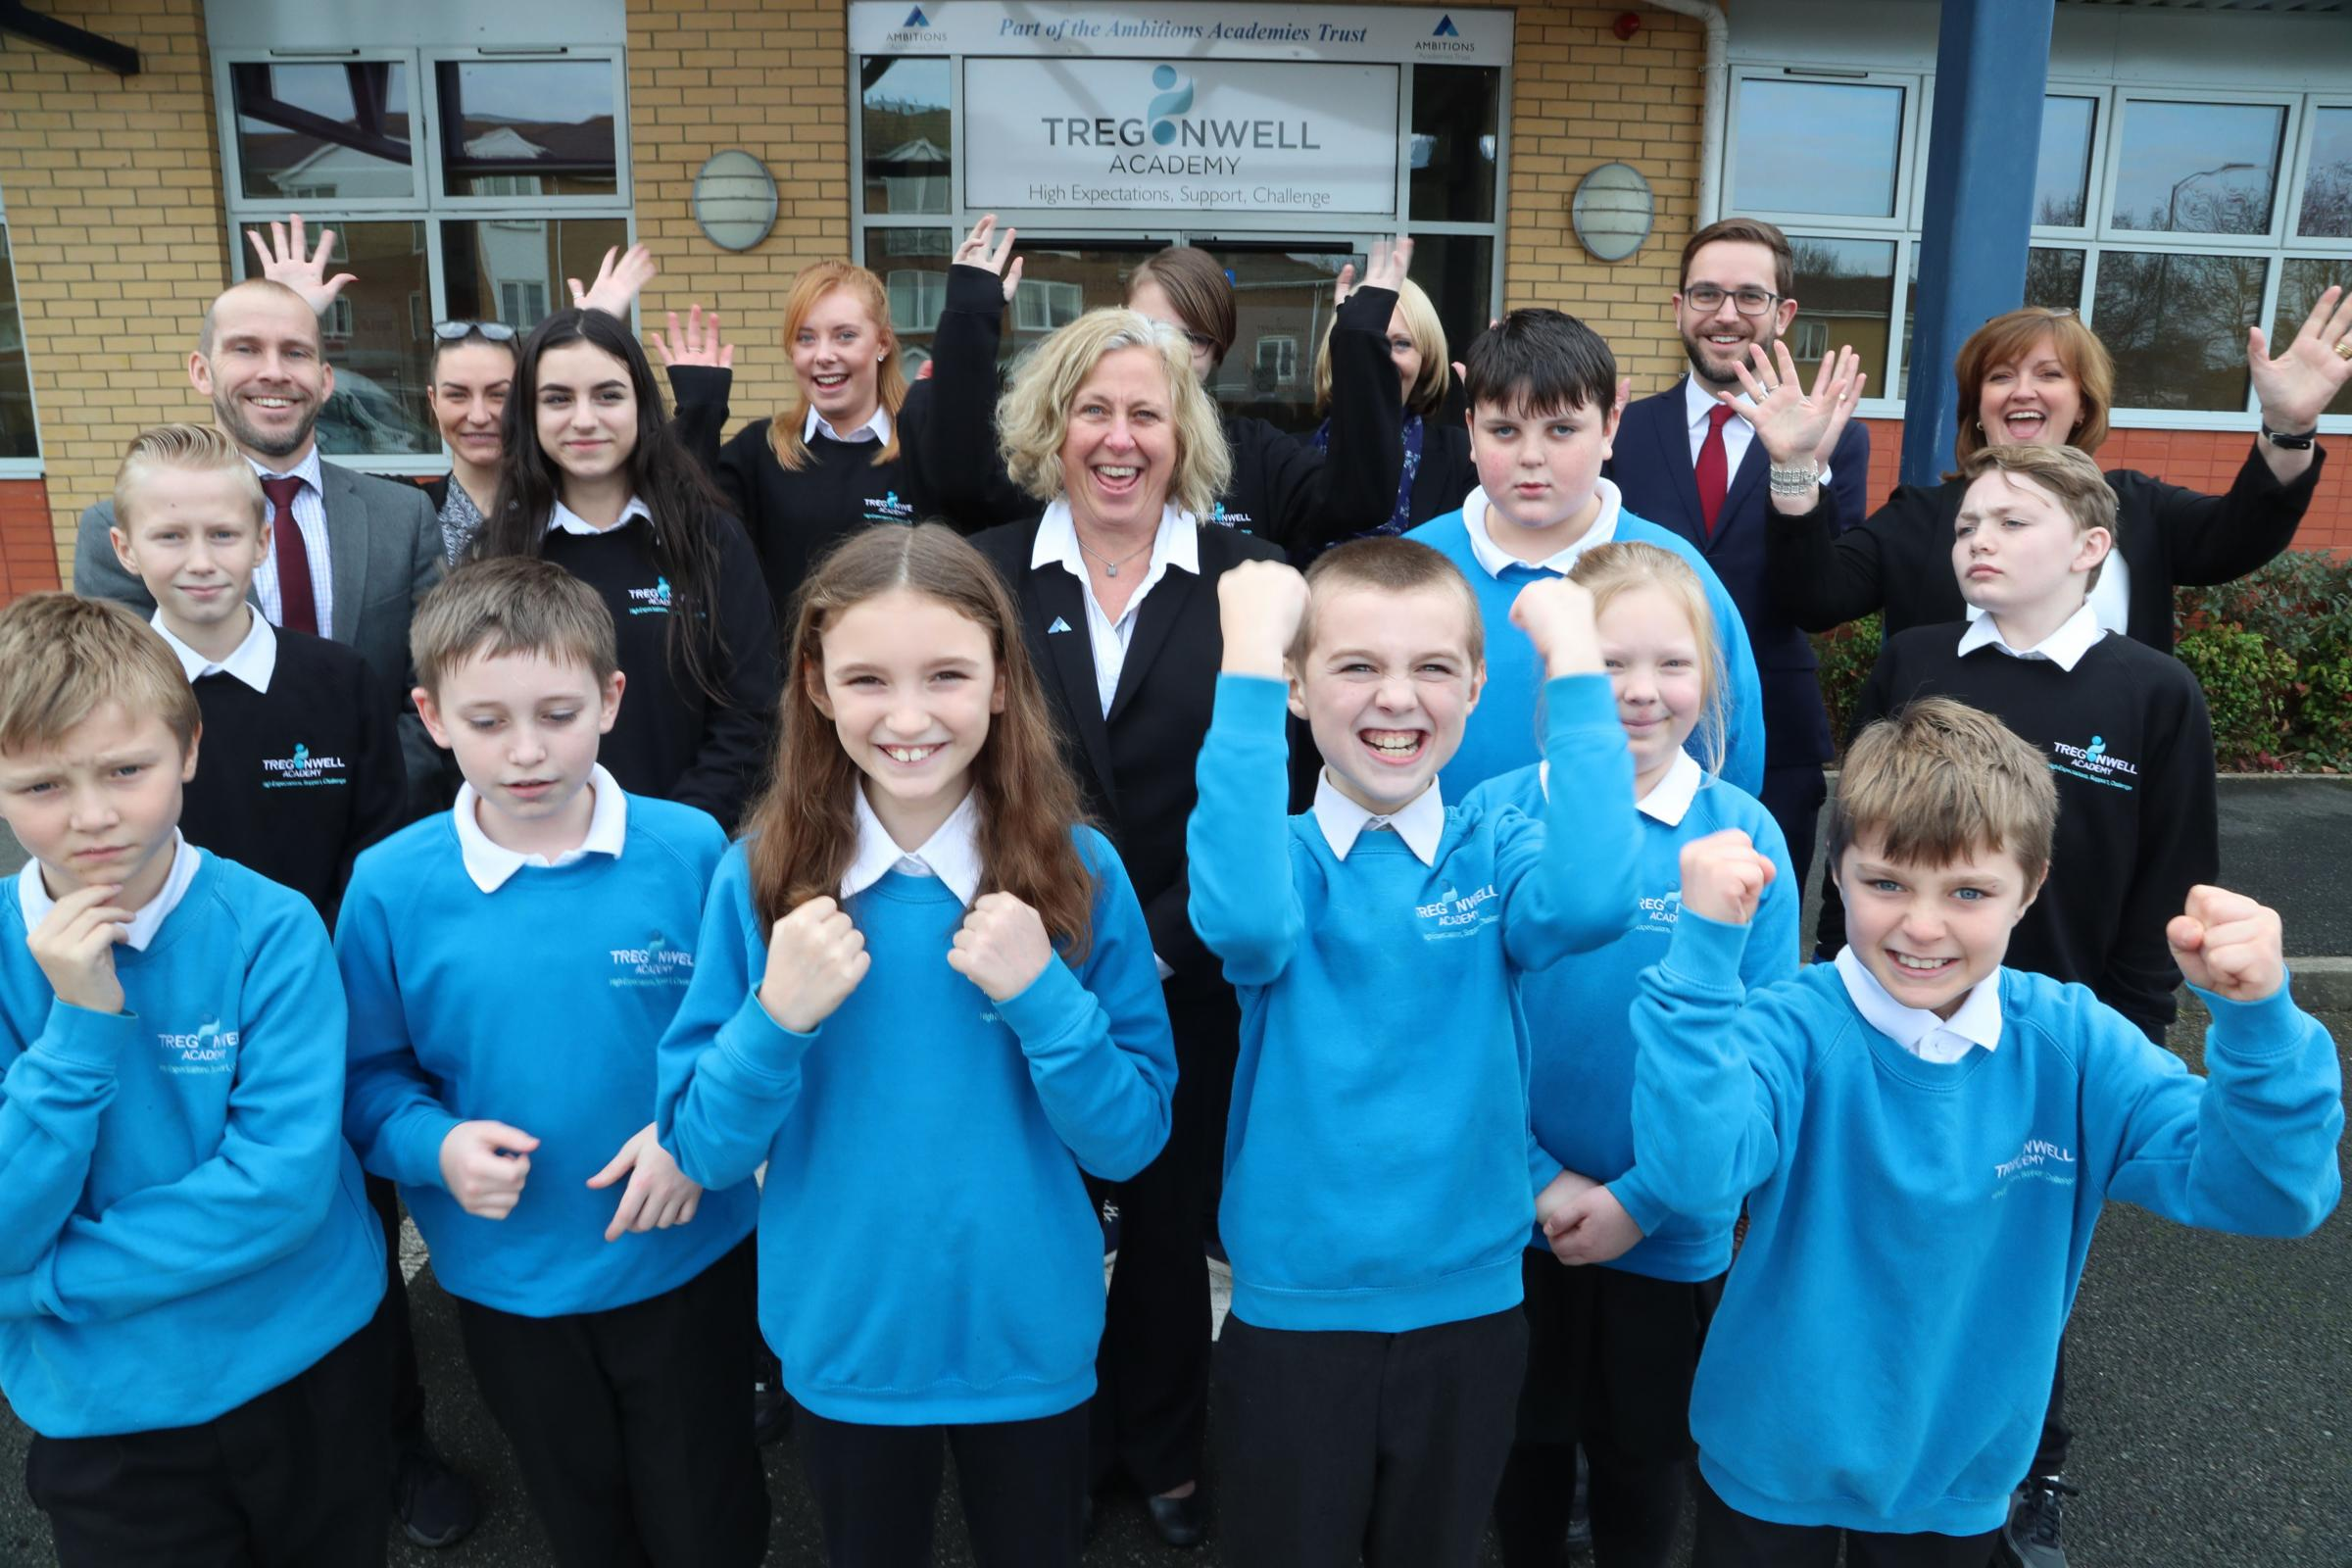 Staff and pupils of the Tregonwell Academy, including Ambitions Academies CEO Sian Thomas (centre), celebrate their Outstanding Ofsted Rating.